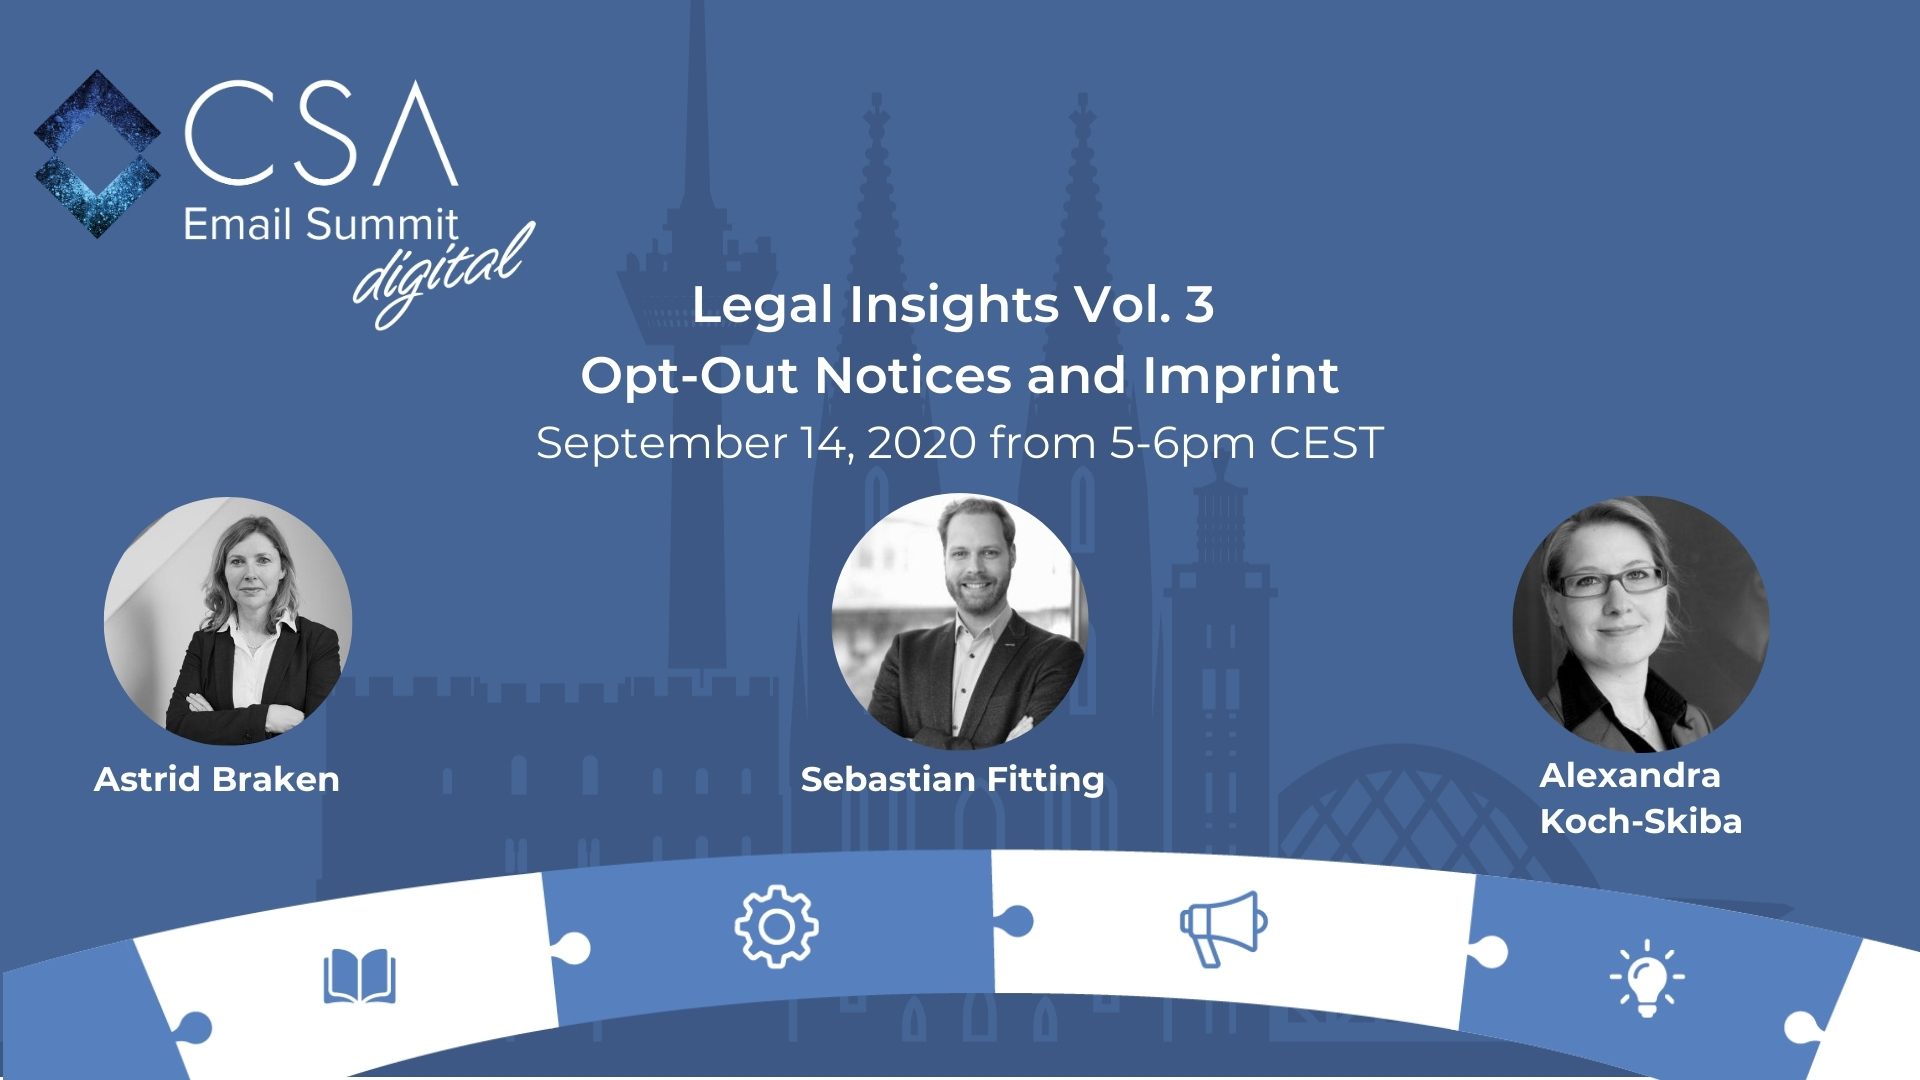 Legal Insights Vol. 3 - Opt-Out Notices and Imprint 1